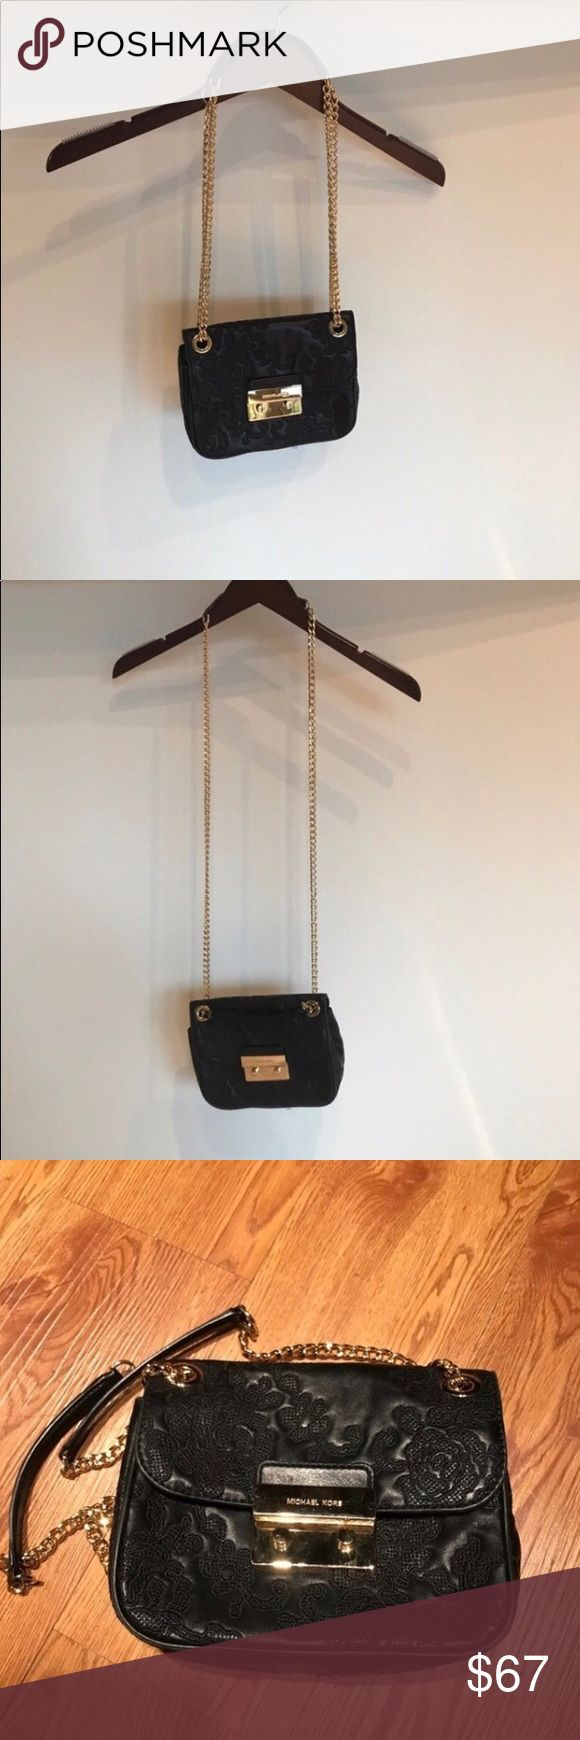 Michael Kors. 'Sloan' crossbody/shoulder bag -I make awesome private offers, and do free shipping on bundles!! Single-item price is firm. ANY wear/imperfections (&perfections!) are considered in price listed.  -My Closet is 100% Authentic -Updated with new often, I love keeping a rotating wardrobe. Shopping & Selling!  -Same-day ship promise when possible  CONDITION & DETAILS:  'Sloan' crossbody/shoulder; black, gold hardware; Great condition, stitching loose in one spot but unnoticeable…